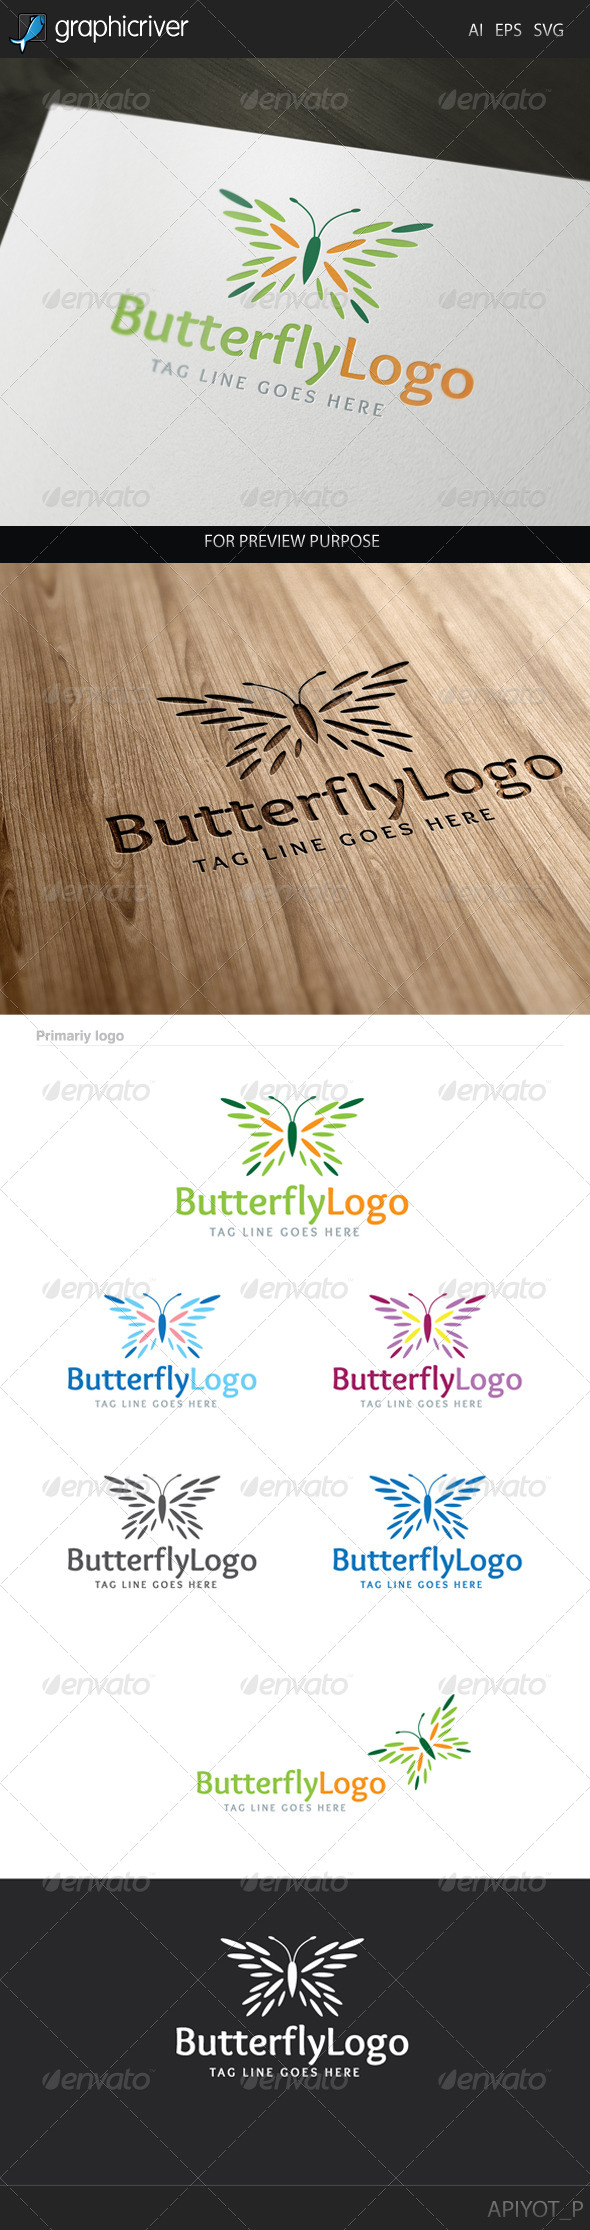 GraphicRiver Butterfly Logo 8172861